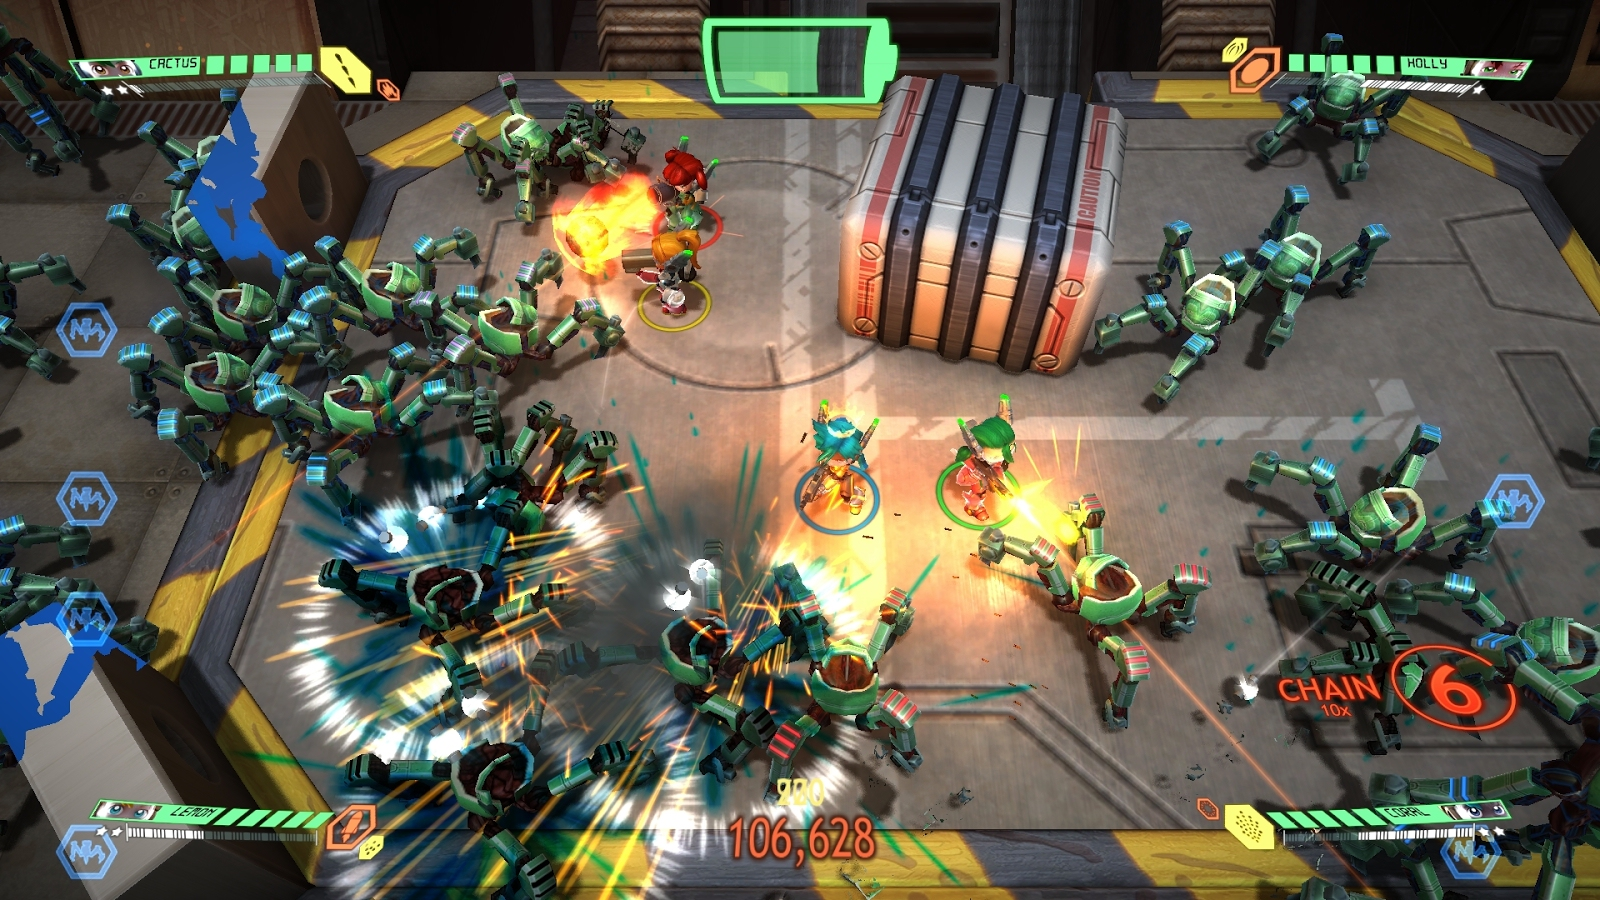 Assault Android Cactus gets a new trailer to show off its ridiculous Mega Weapons